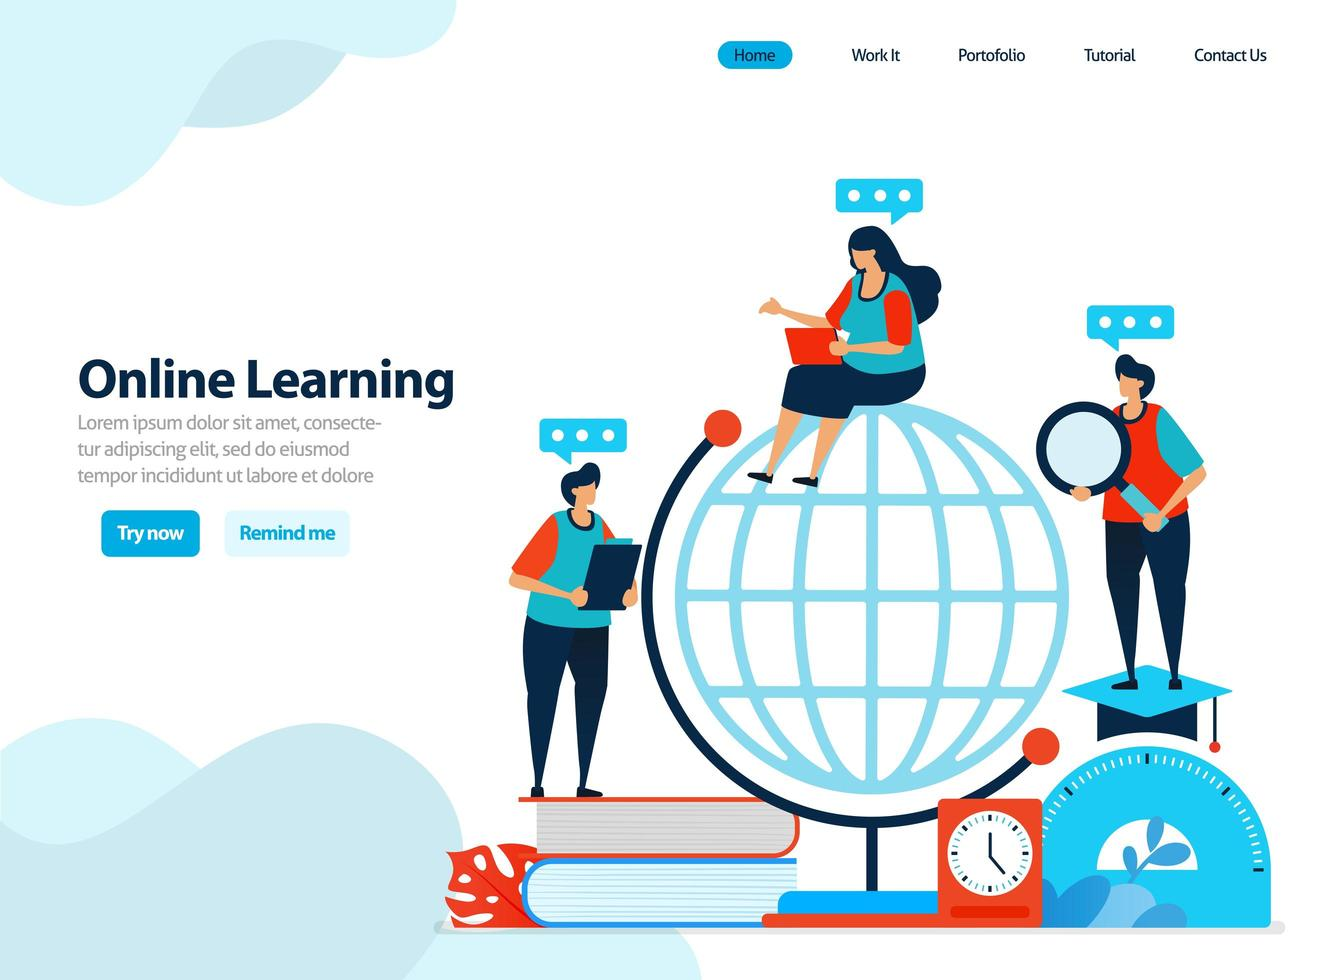 website design of online learning and digital education. distance learning with internet and innovation. Flat illustration for landing page template, ui ux, website, mobile app, flyer, brochure, ads vector